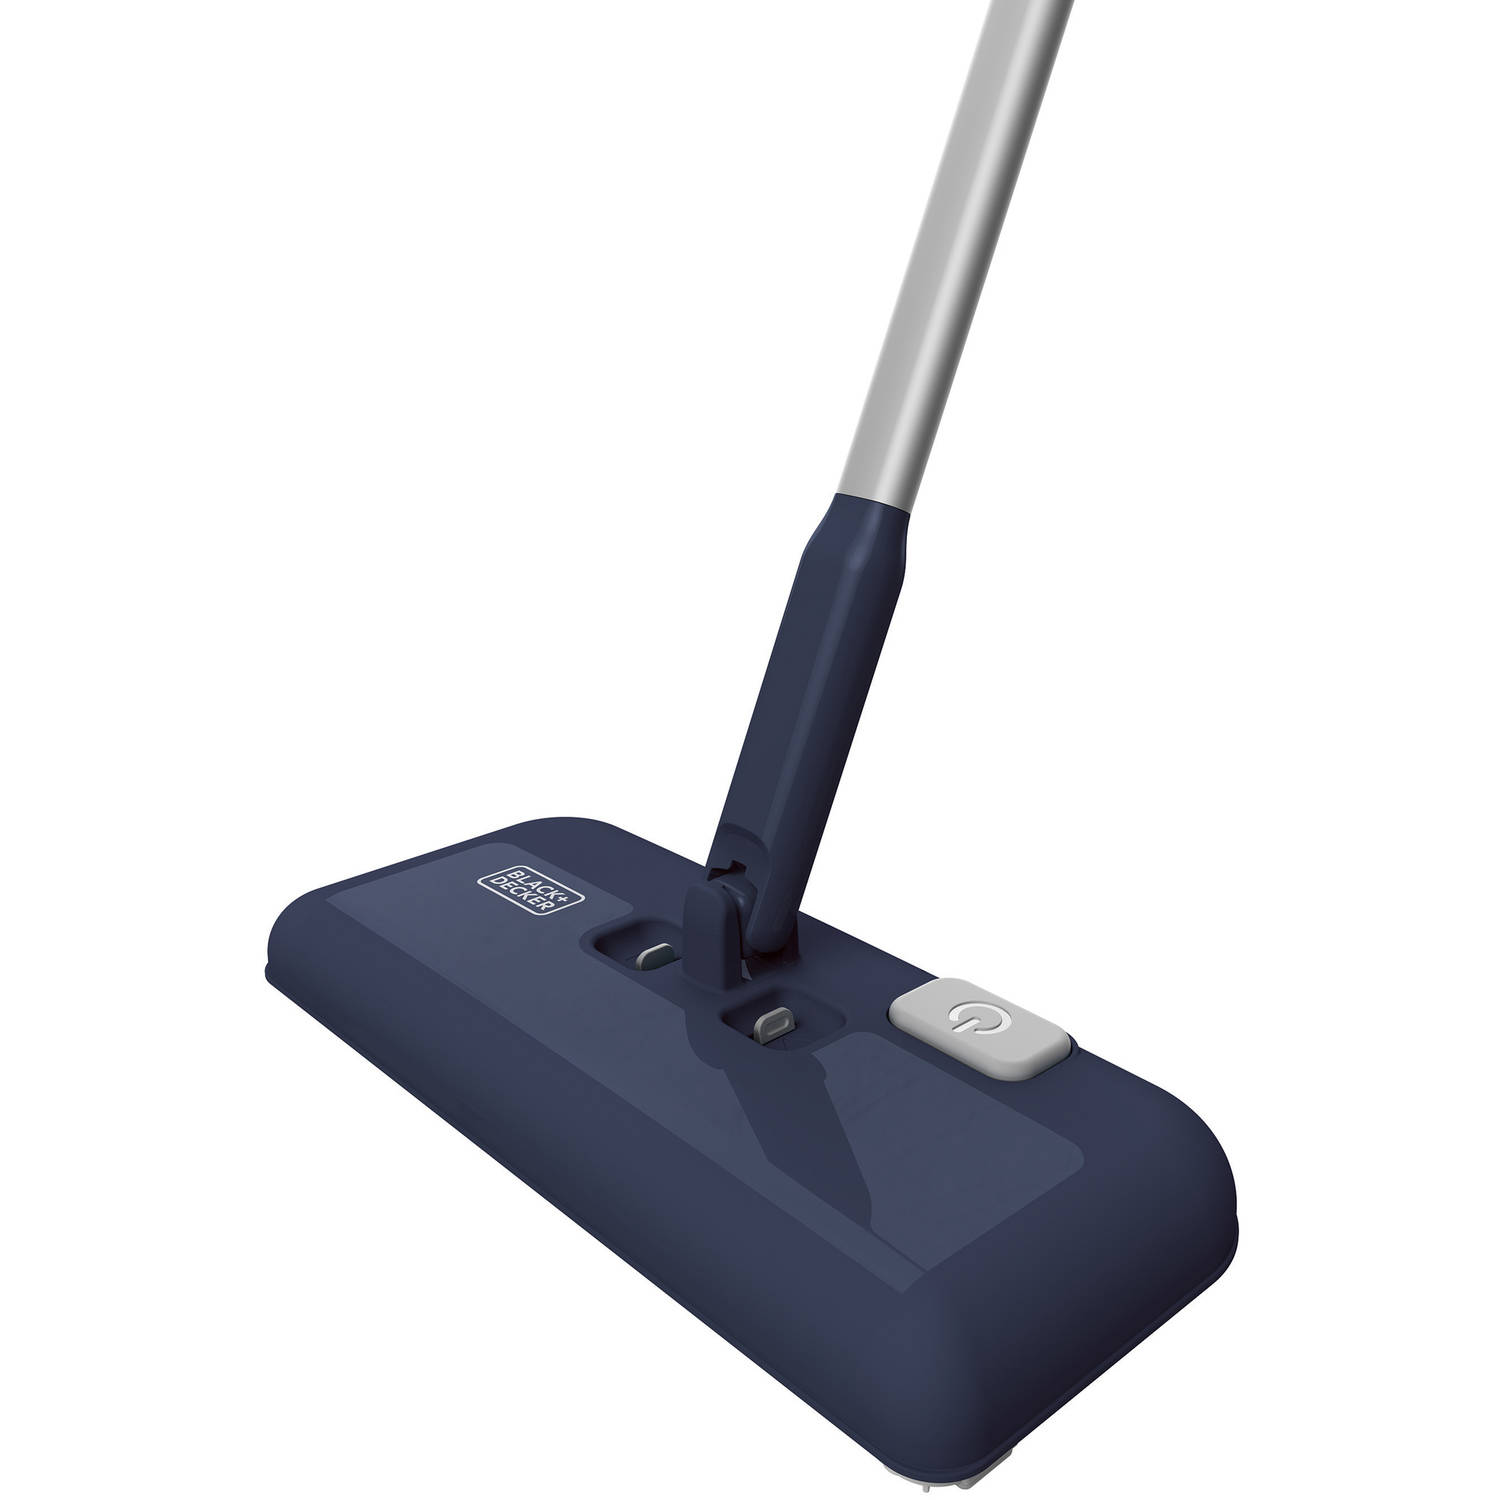 blackdecker hfs413j18wm 48v dustbuster powered carpet sweeper walmartcom